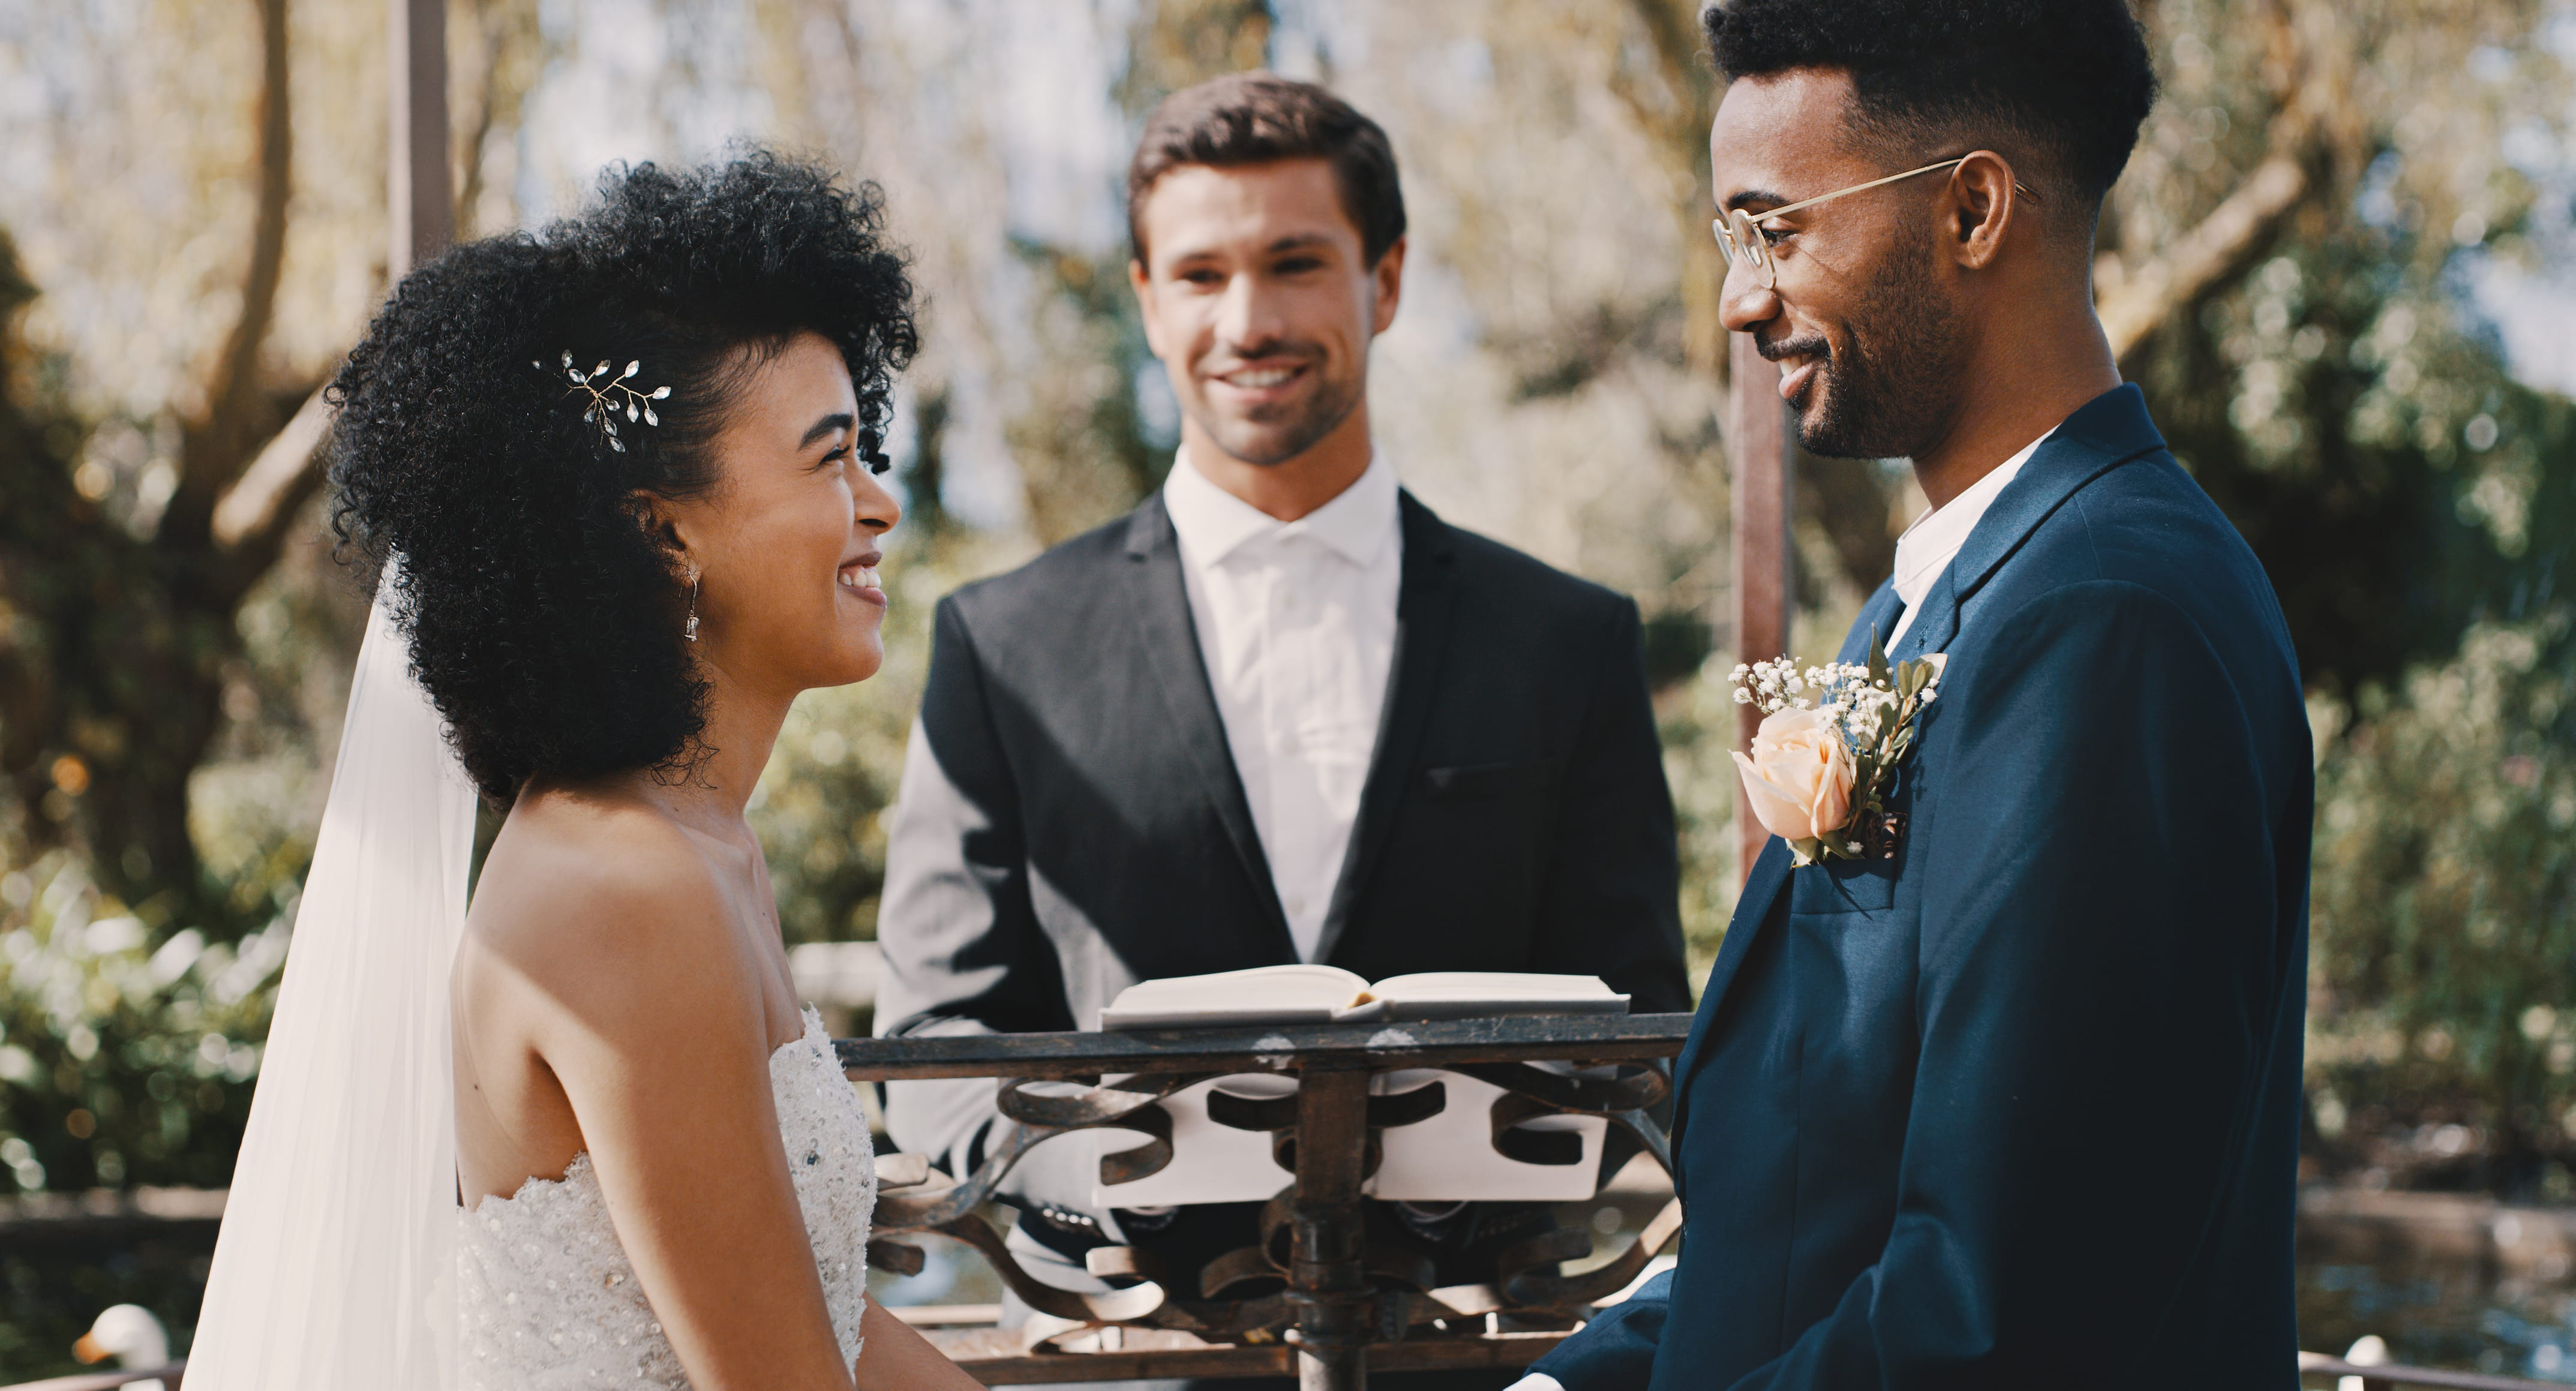 Ordained Minister performing a wedding ceremony